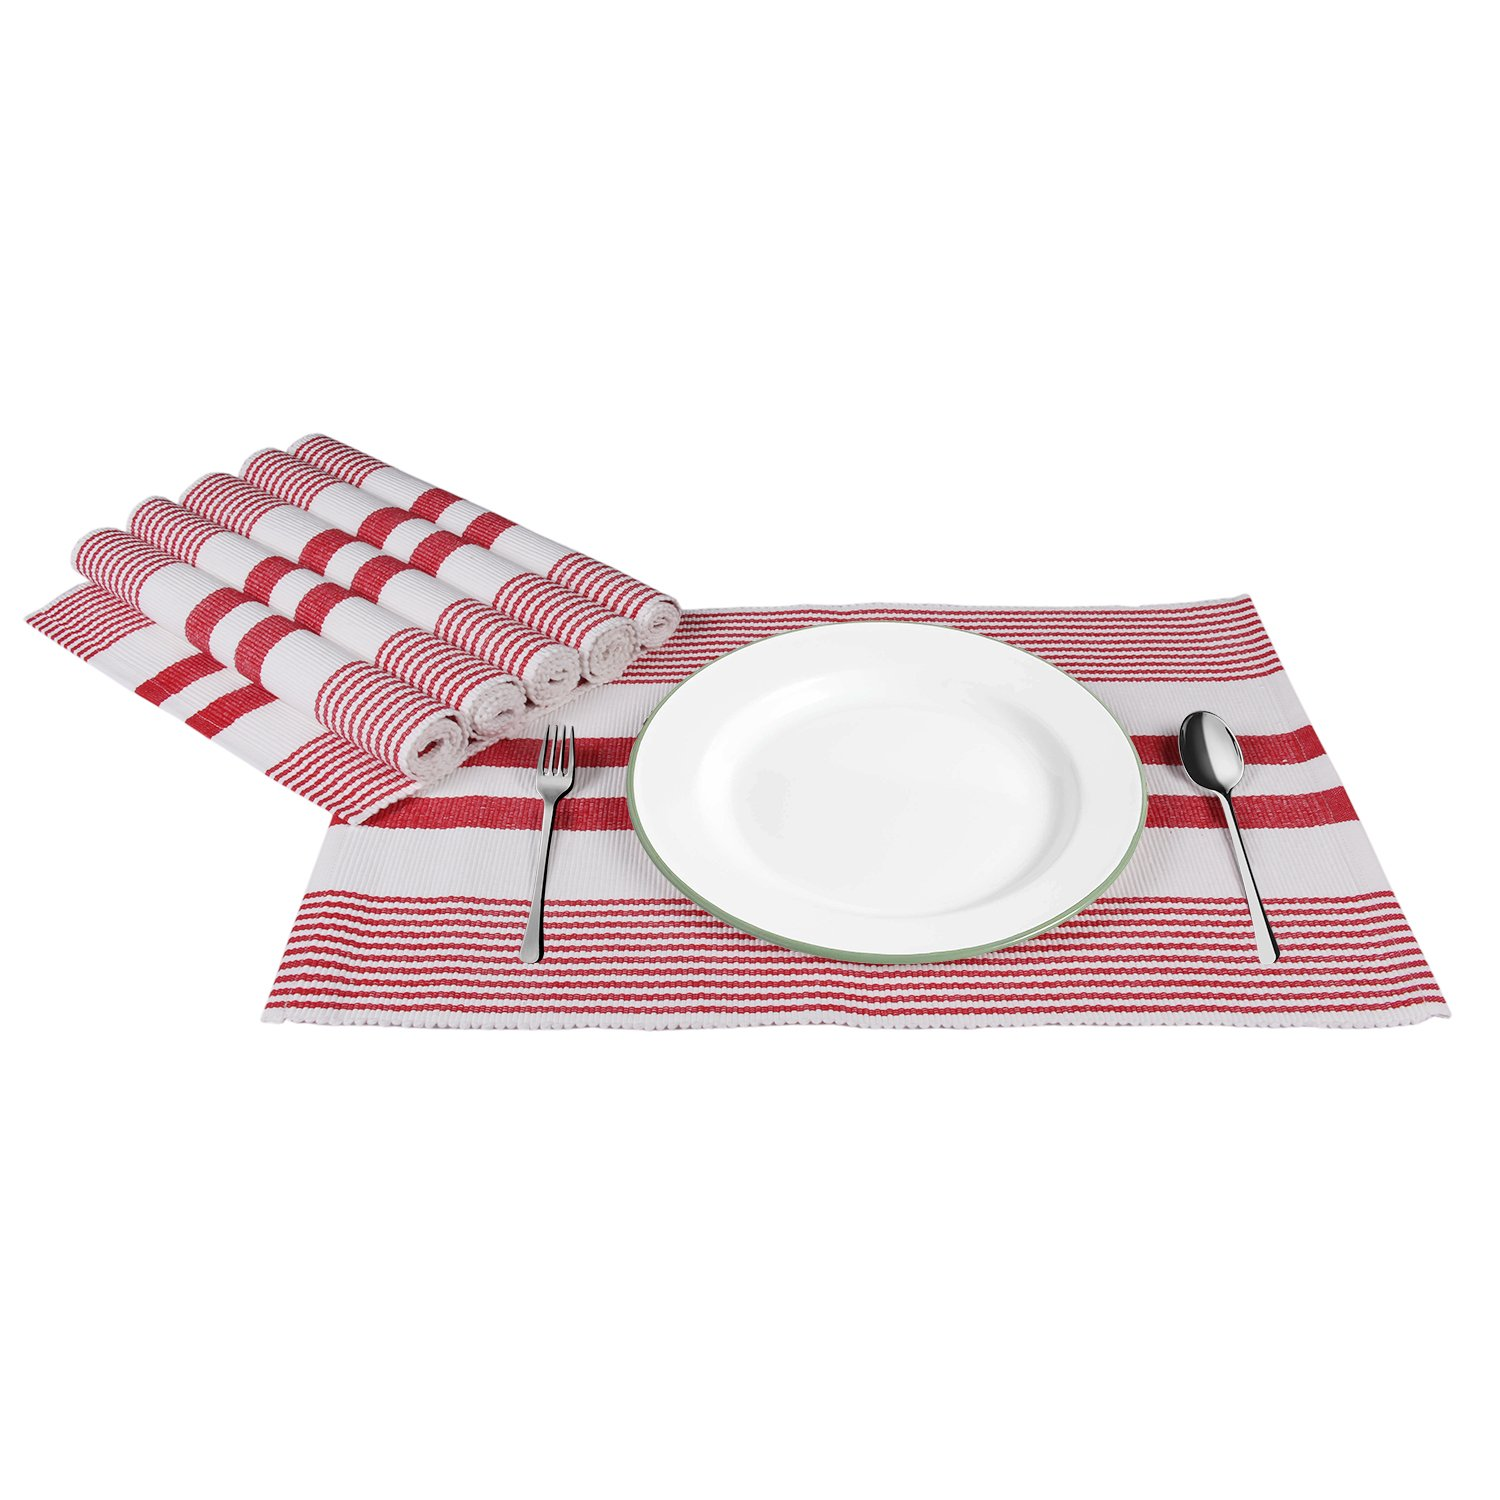 "Icrafts Set of 6 Cotton placemats Table Mats Kitchen Dining Essentials in Stripes Everyday Use Machine Washable 20 x 13"" (Red)"